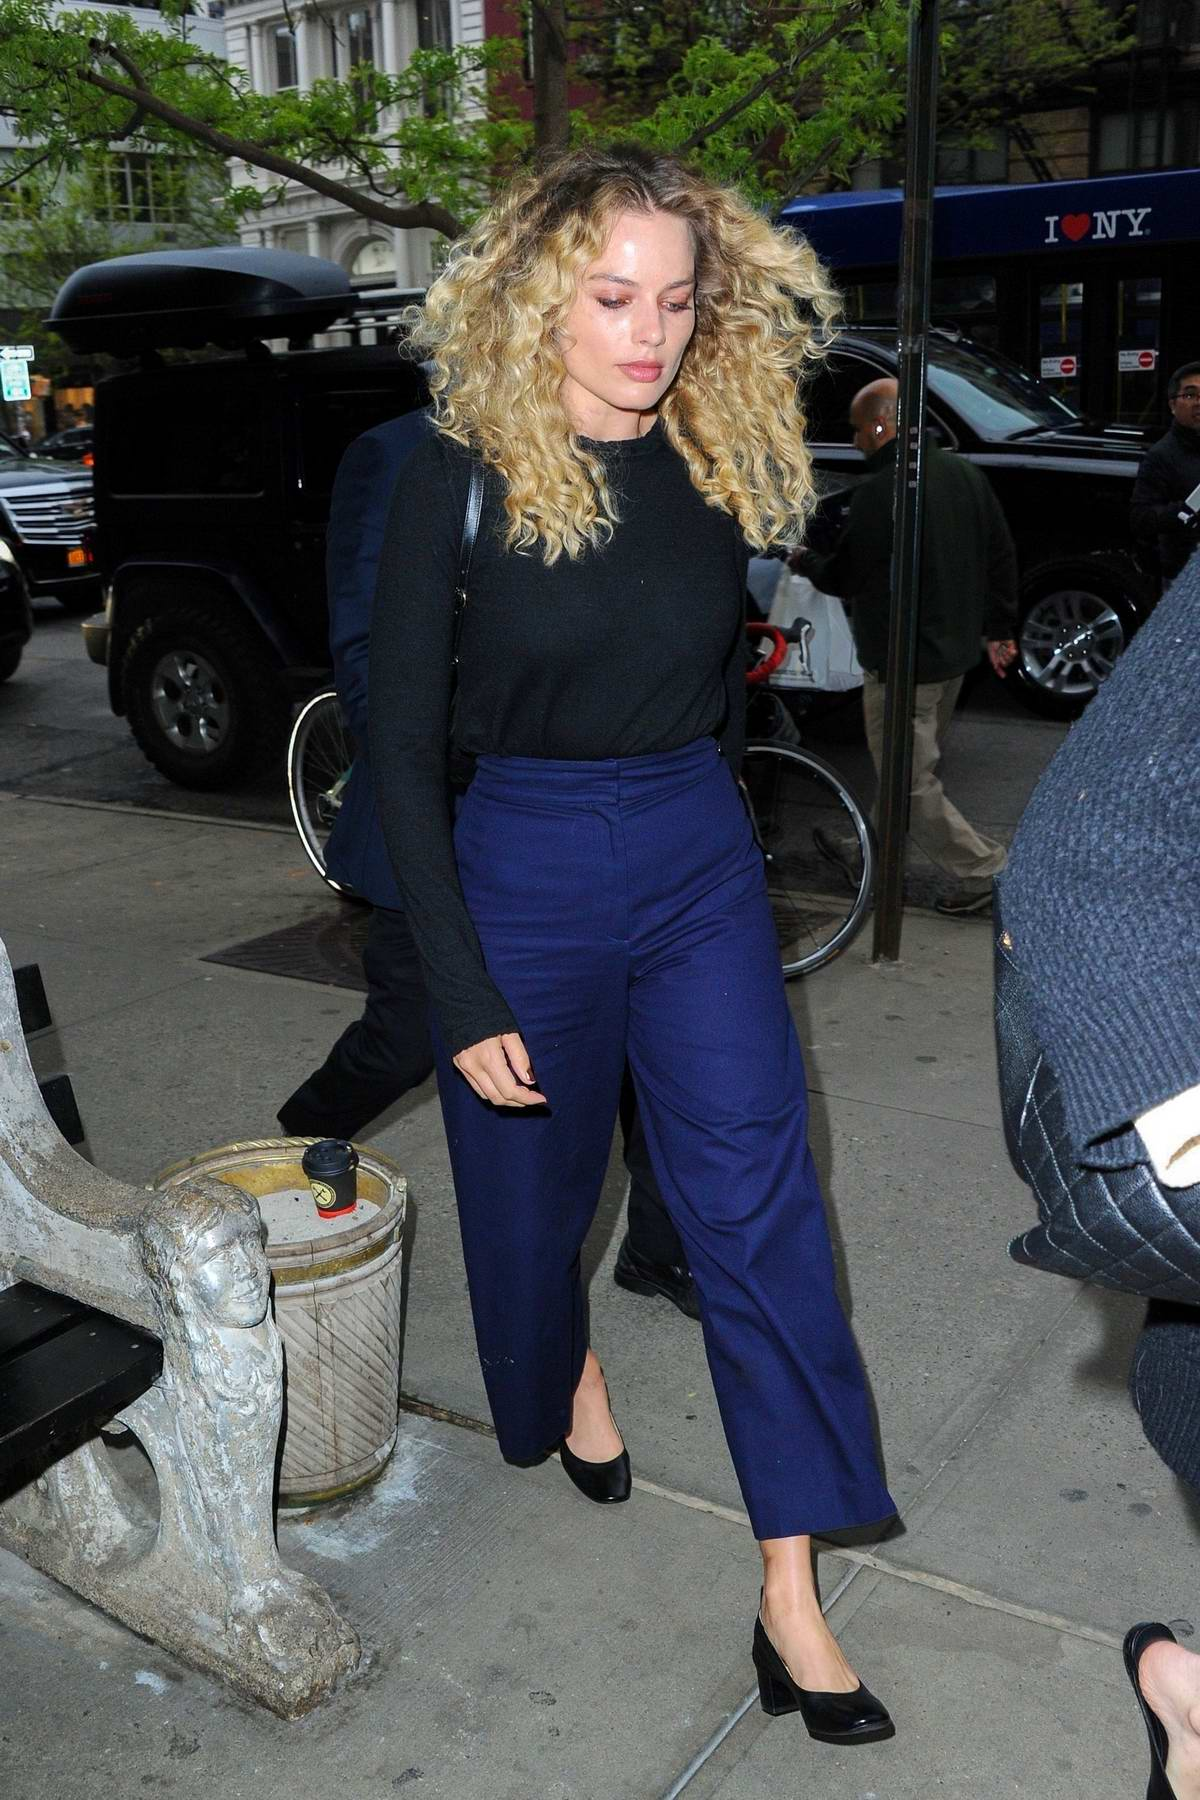 Margot Robbie sports curls while out promoting 'Dreamland' in New York City